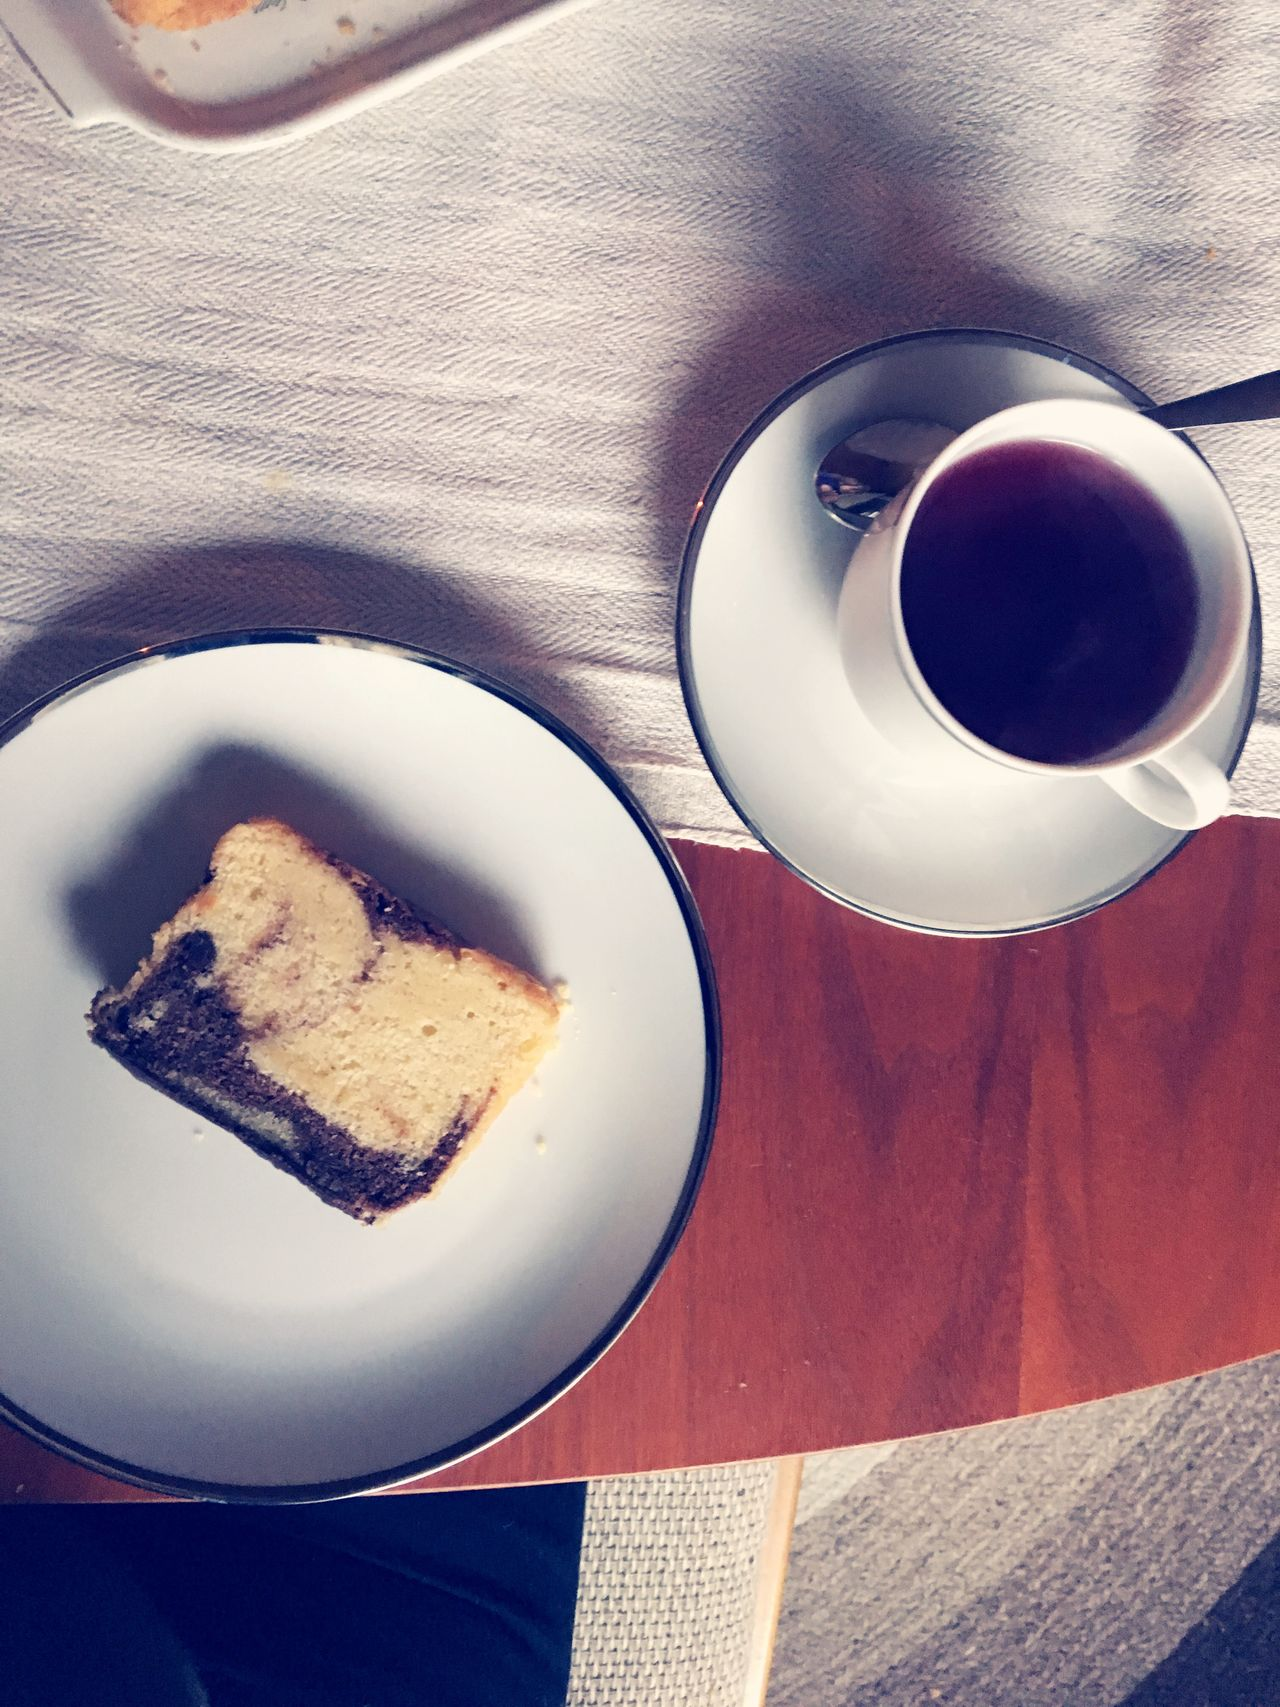 Natural Fabrics Tea Cup Table Natural Colours Natural Colors Table Setting Cloth Linen Texture Linens And Textiles Freshness High Angle View Indoors  Serving Size Breakfast Table Tea Time! Caketime Colori Naturali Lino Tessuti Tessuti Naturali Natural Textiles Naturtextilien Naturfarben Natürliche Farben Leinen